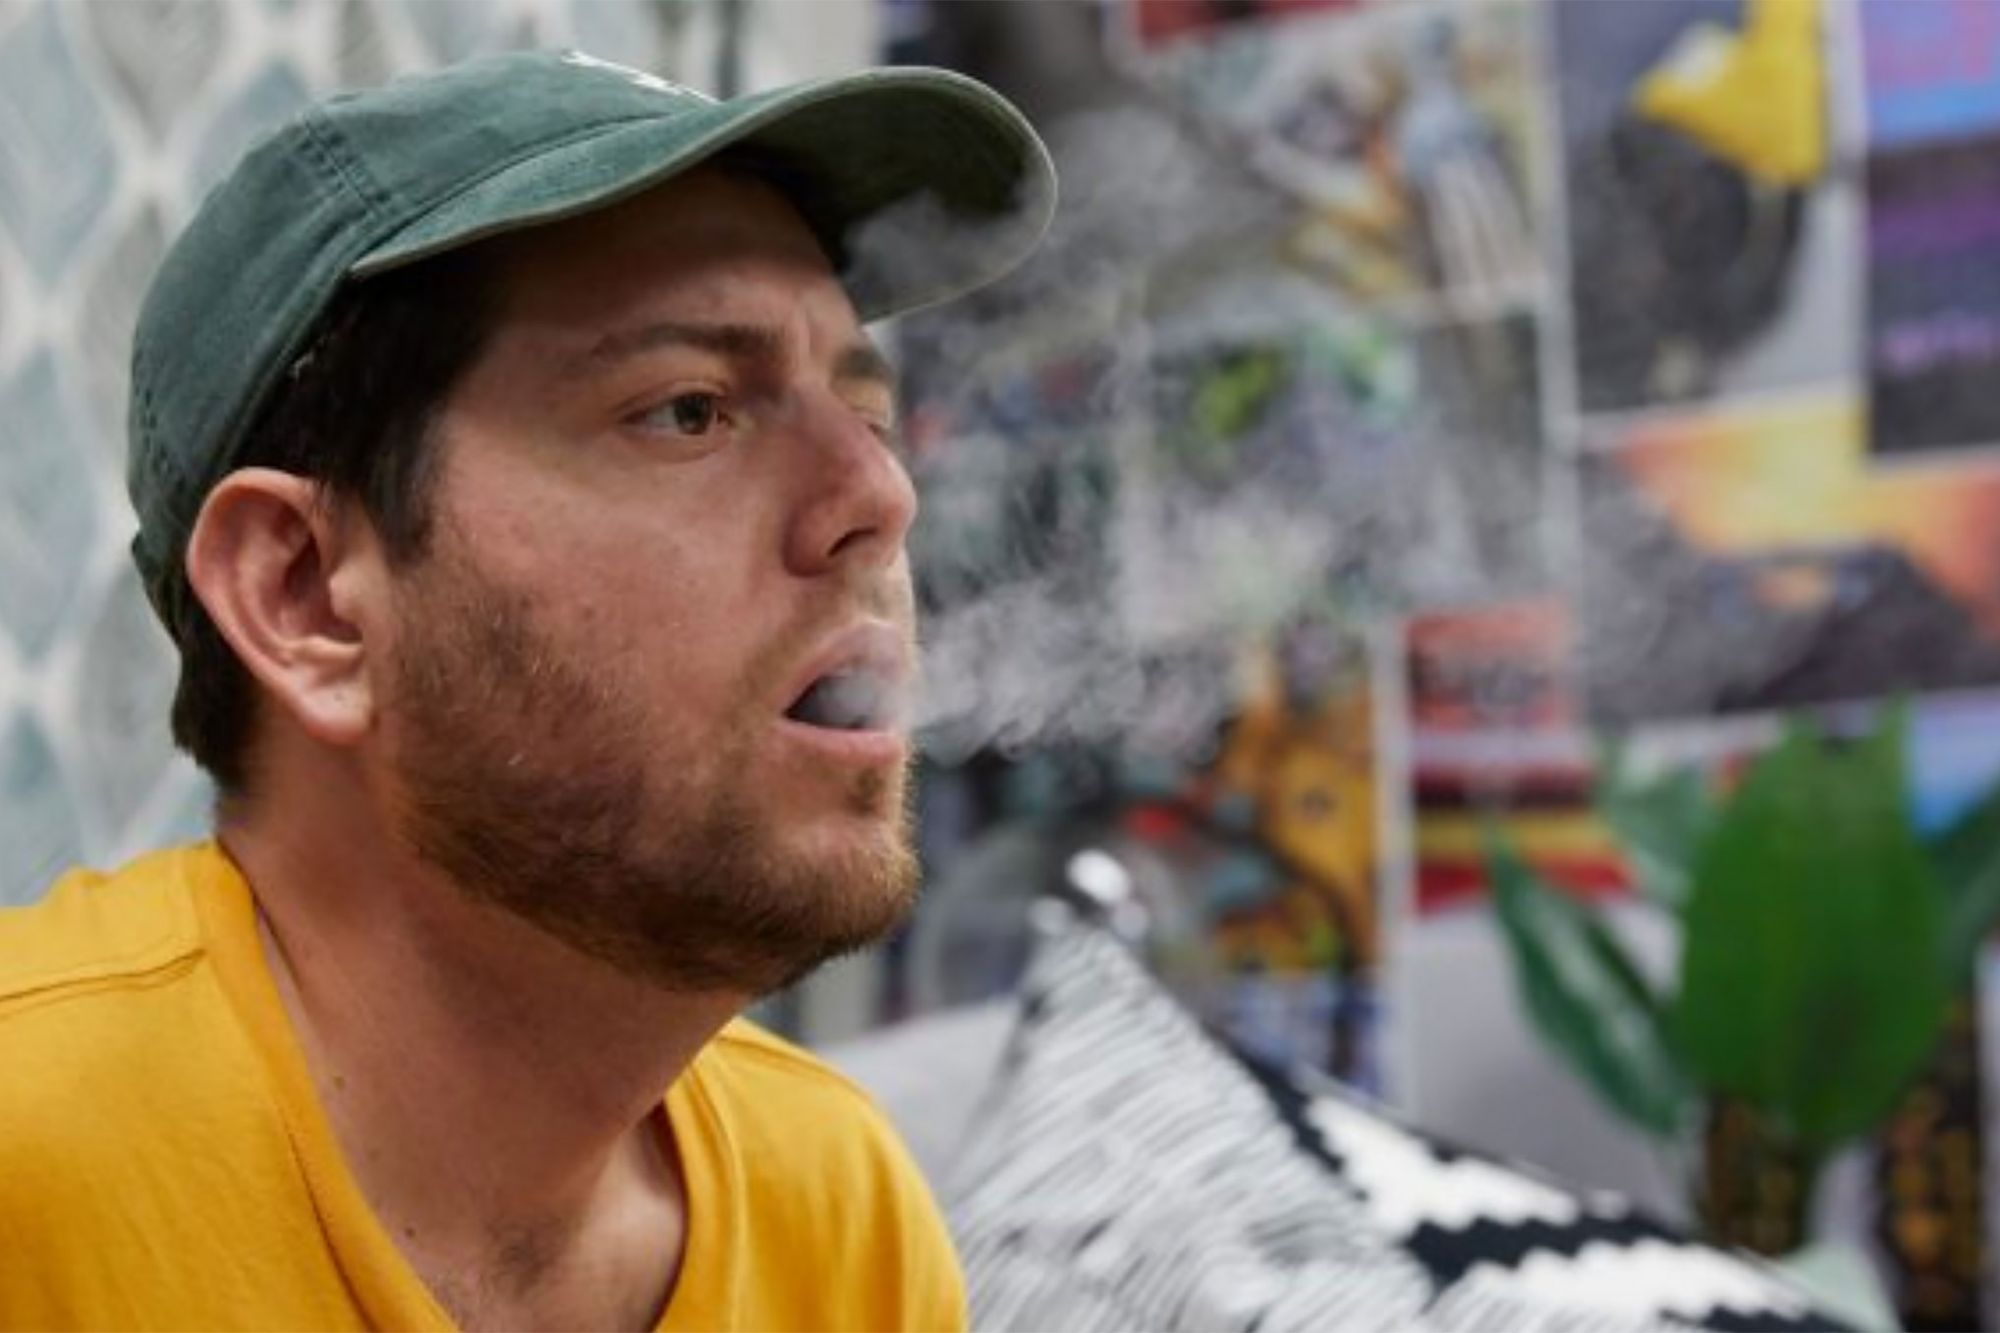 Study: The Number Of People Who Abuse Weed Is Decreasing. Legalization May Be Responsible